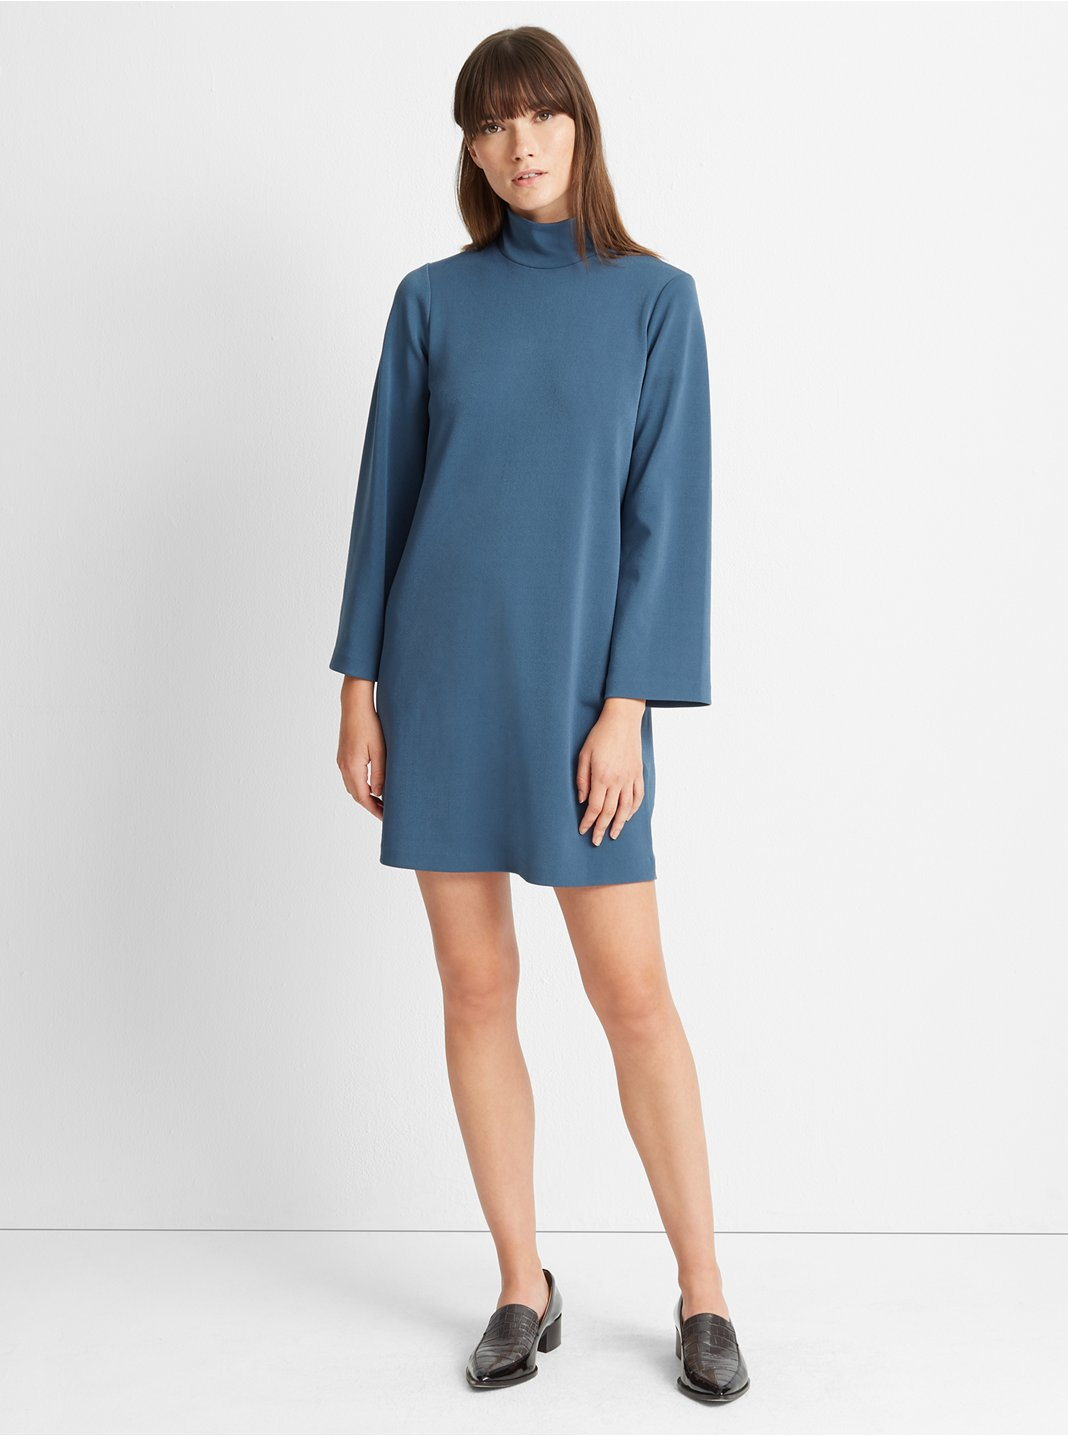 Ellaibellai Knit Dress